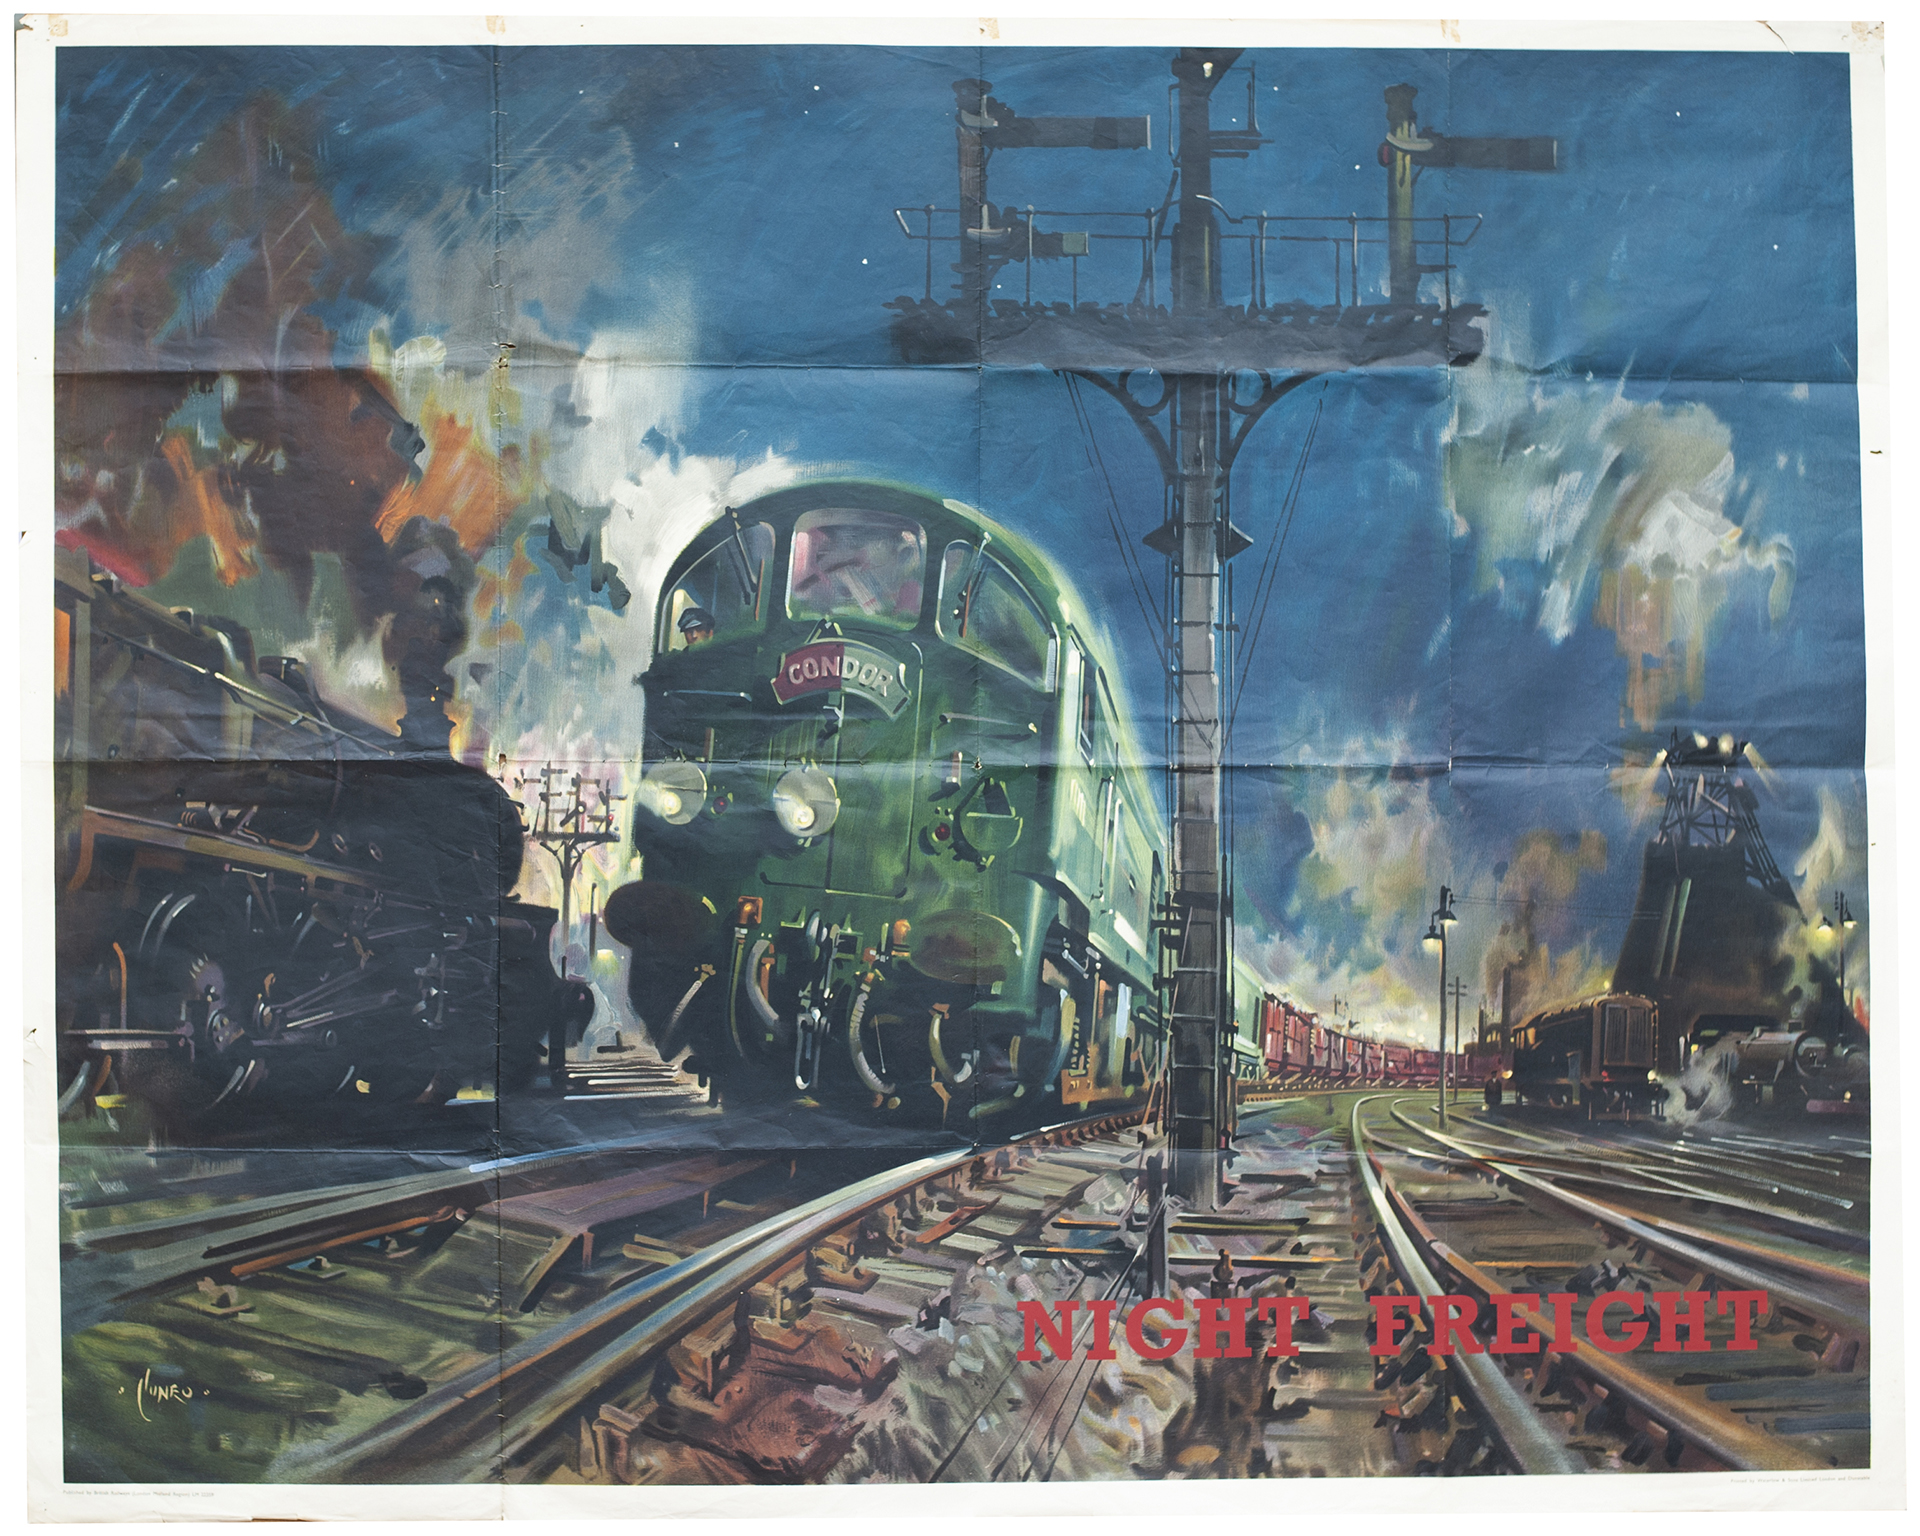 Poster BR(W) NIGHT FREIGHT by Terence Cuneo. Quad Royal 40in x 50in. In good condition with minor